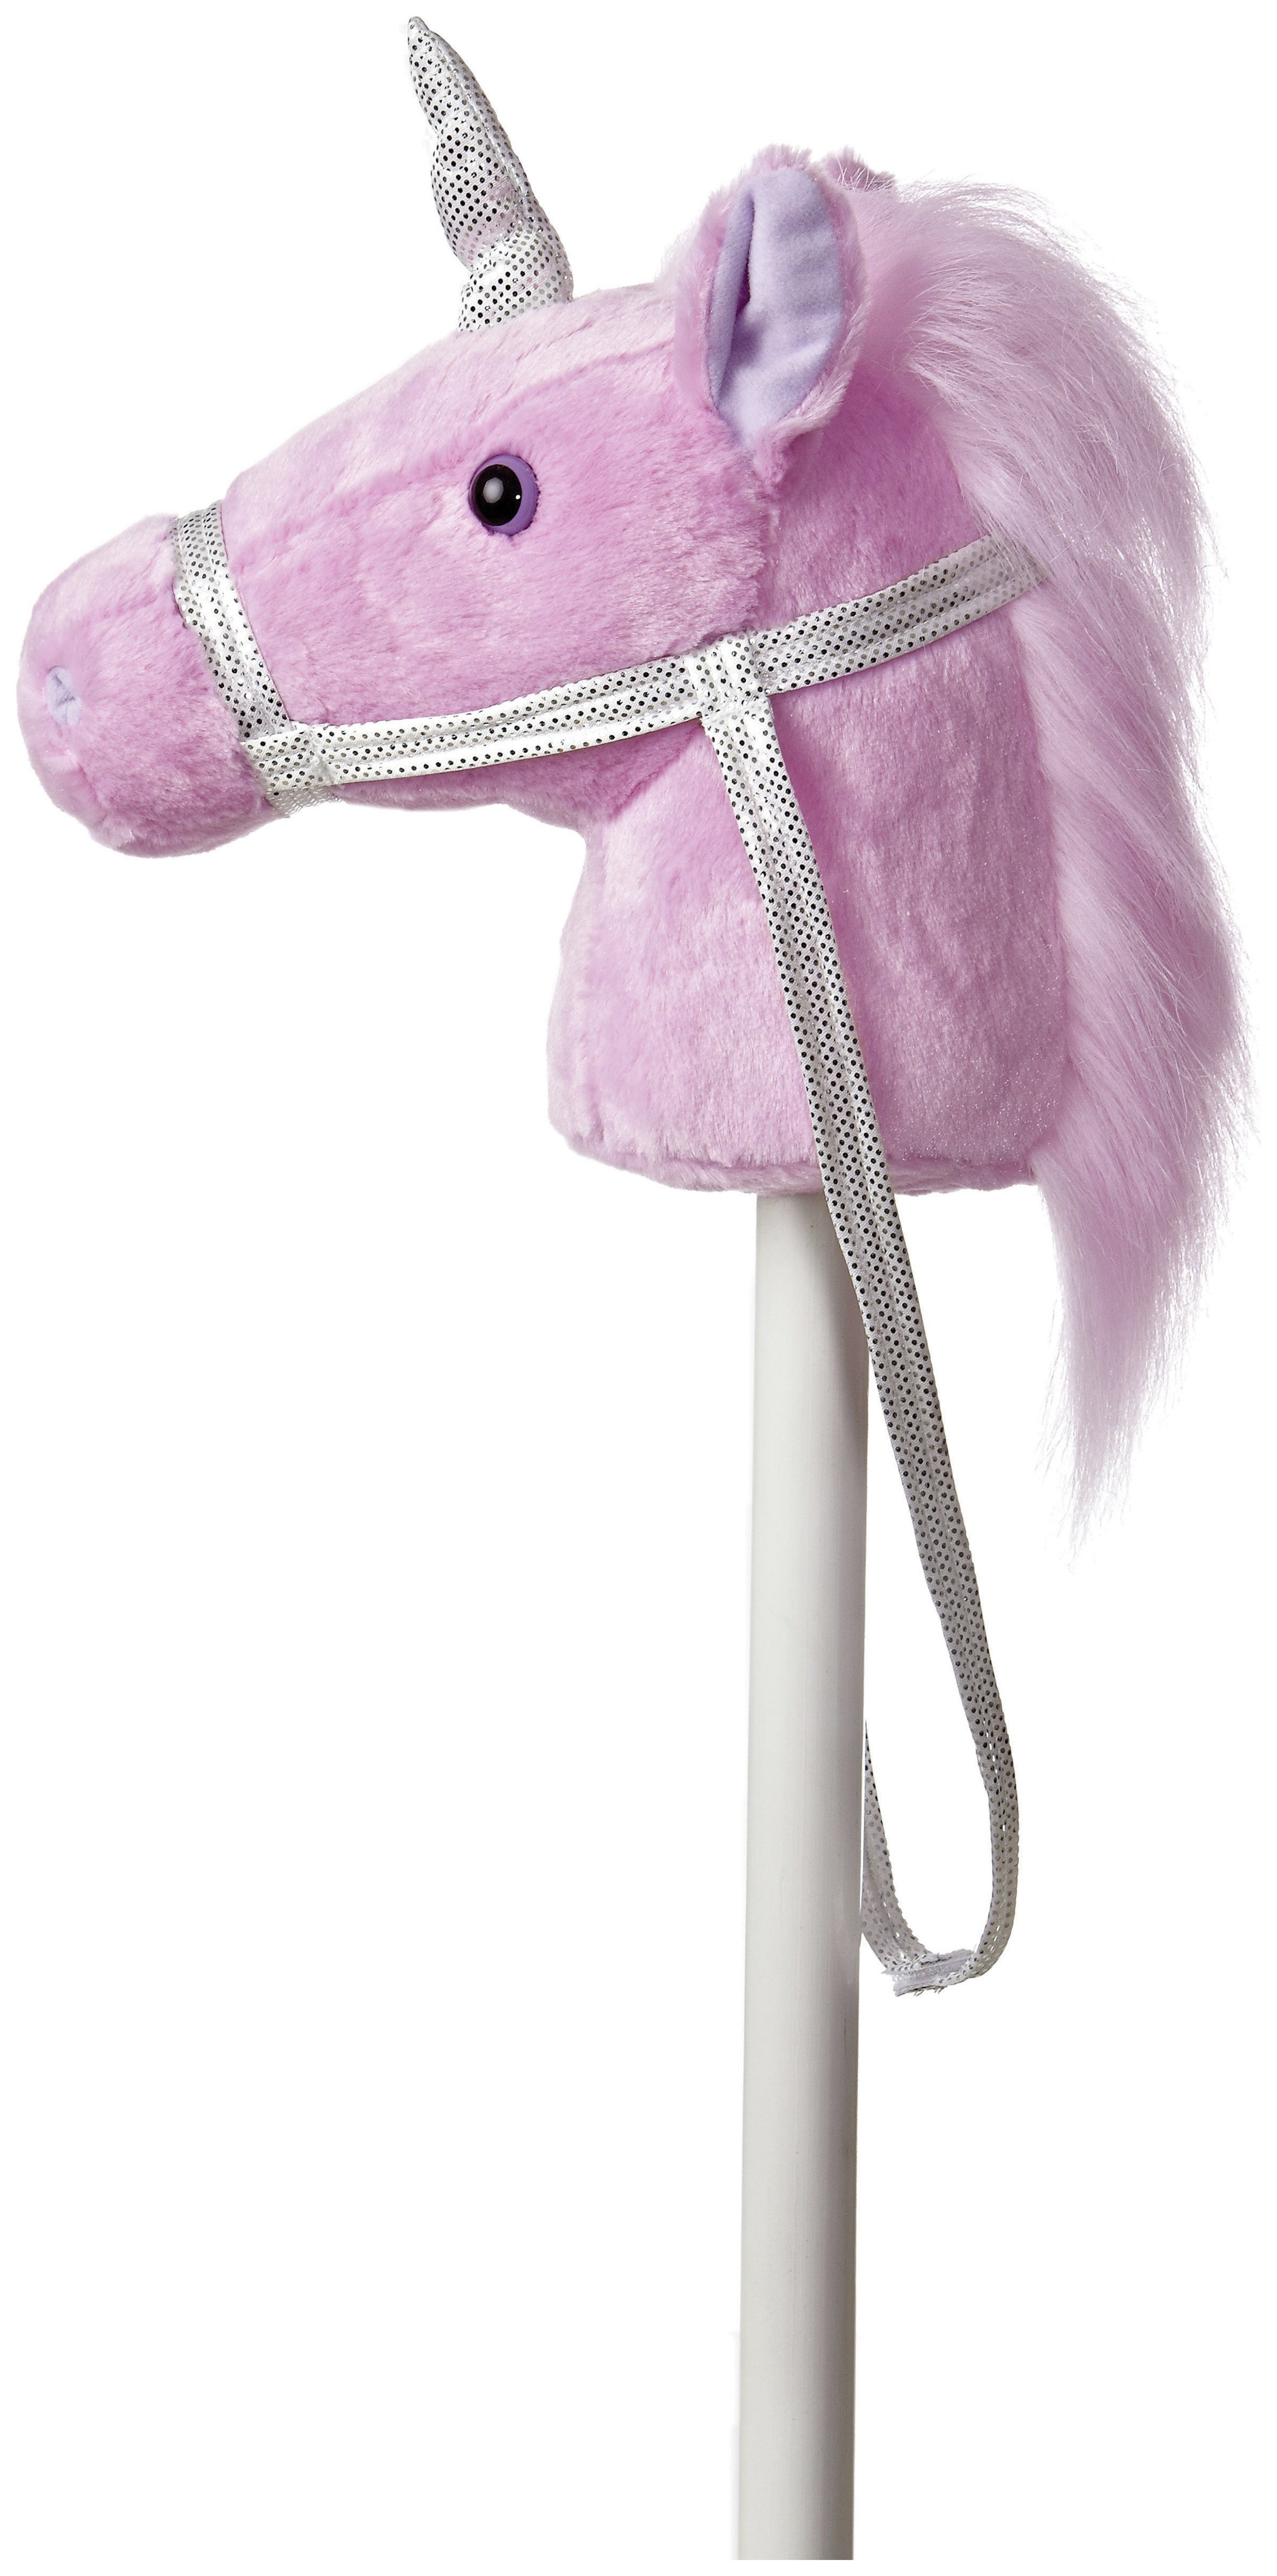 Image of Giddy Up Fantasy Unicorn Pony with Sounds 37 inch.